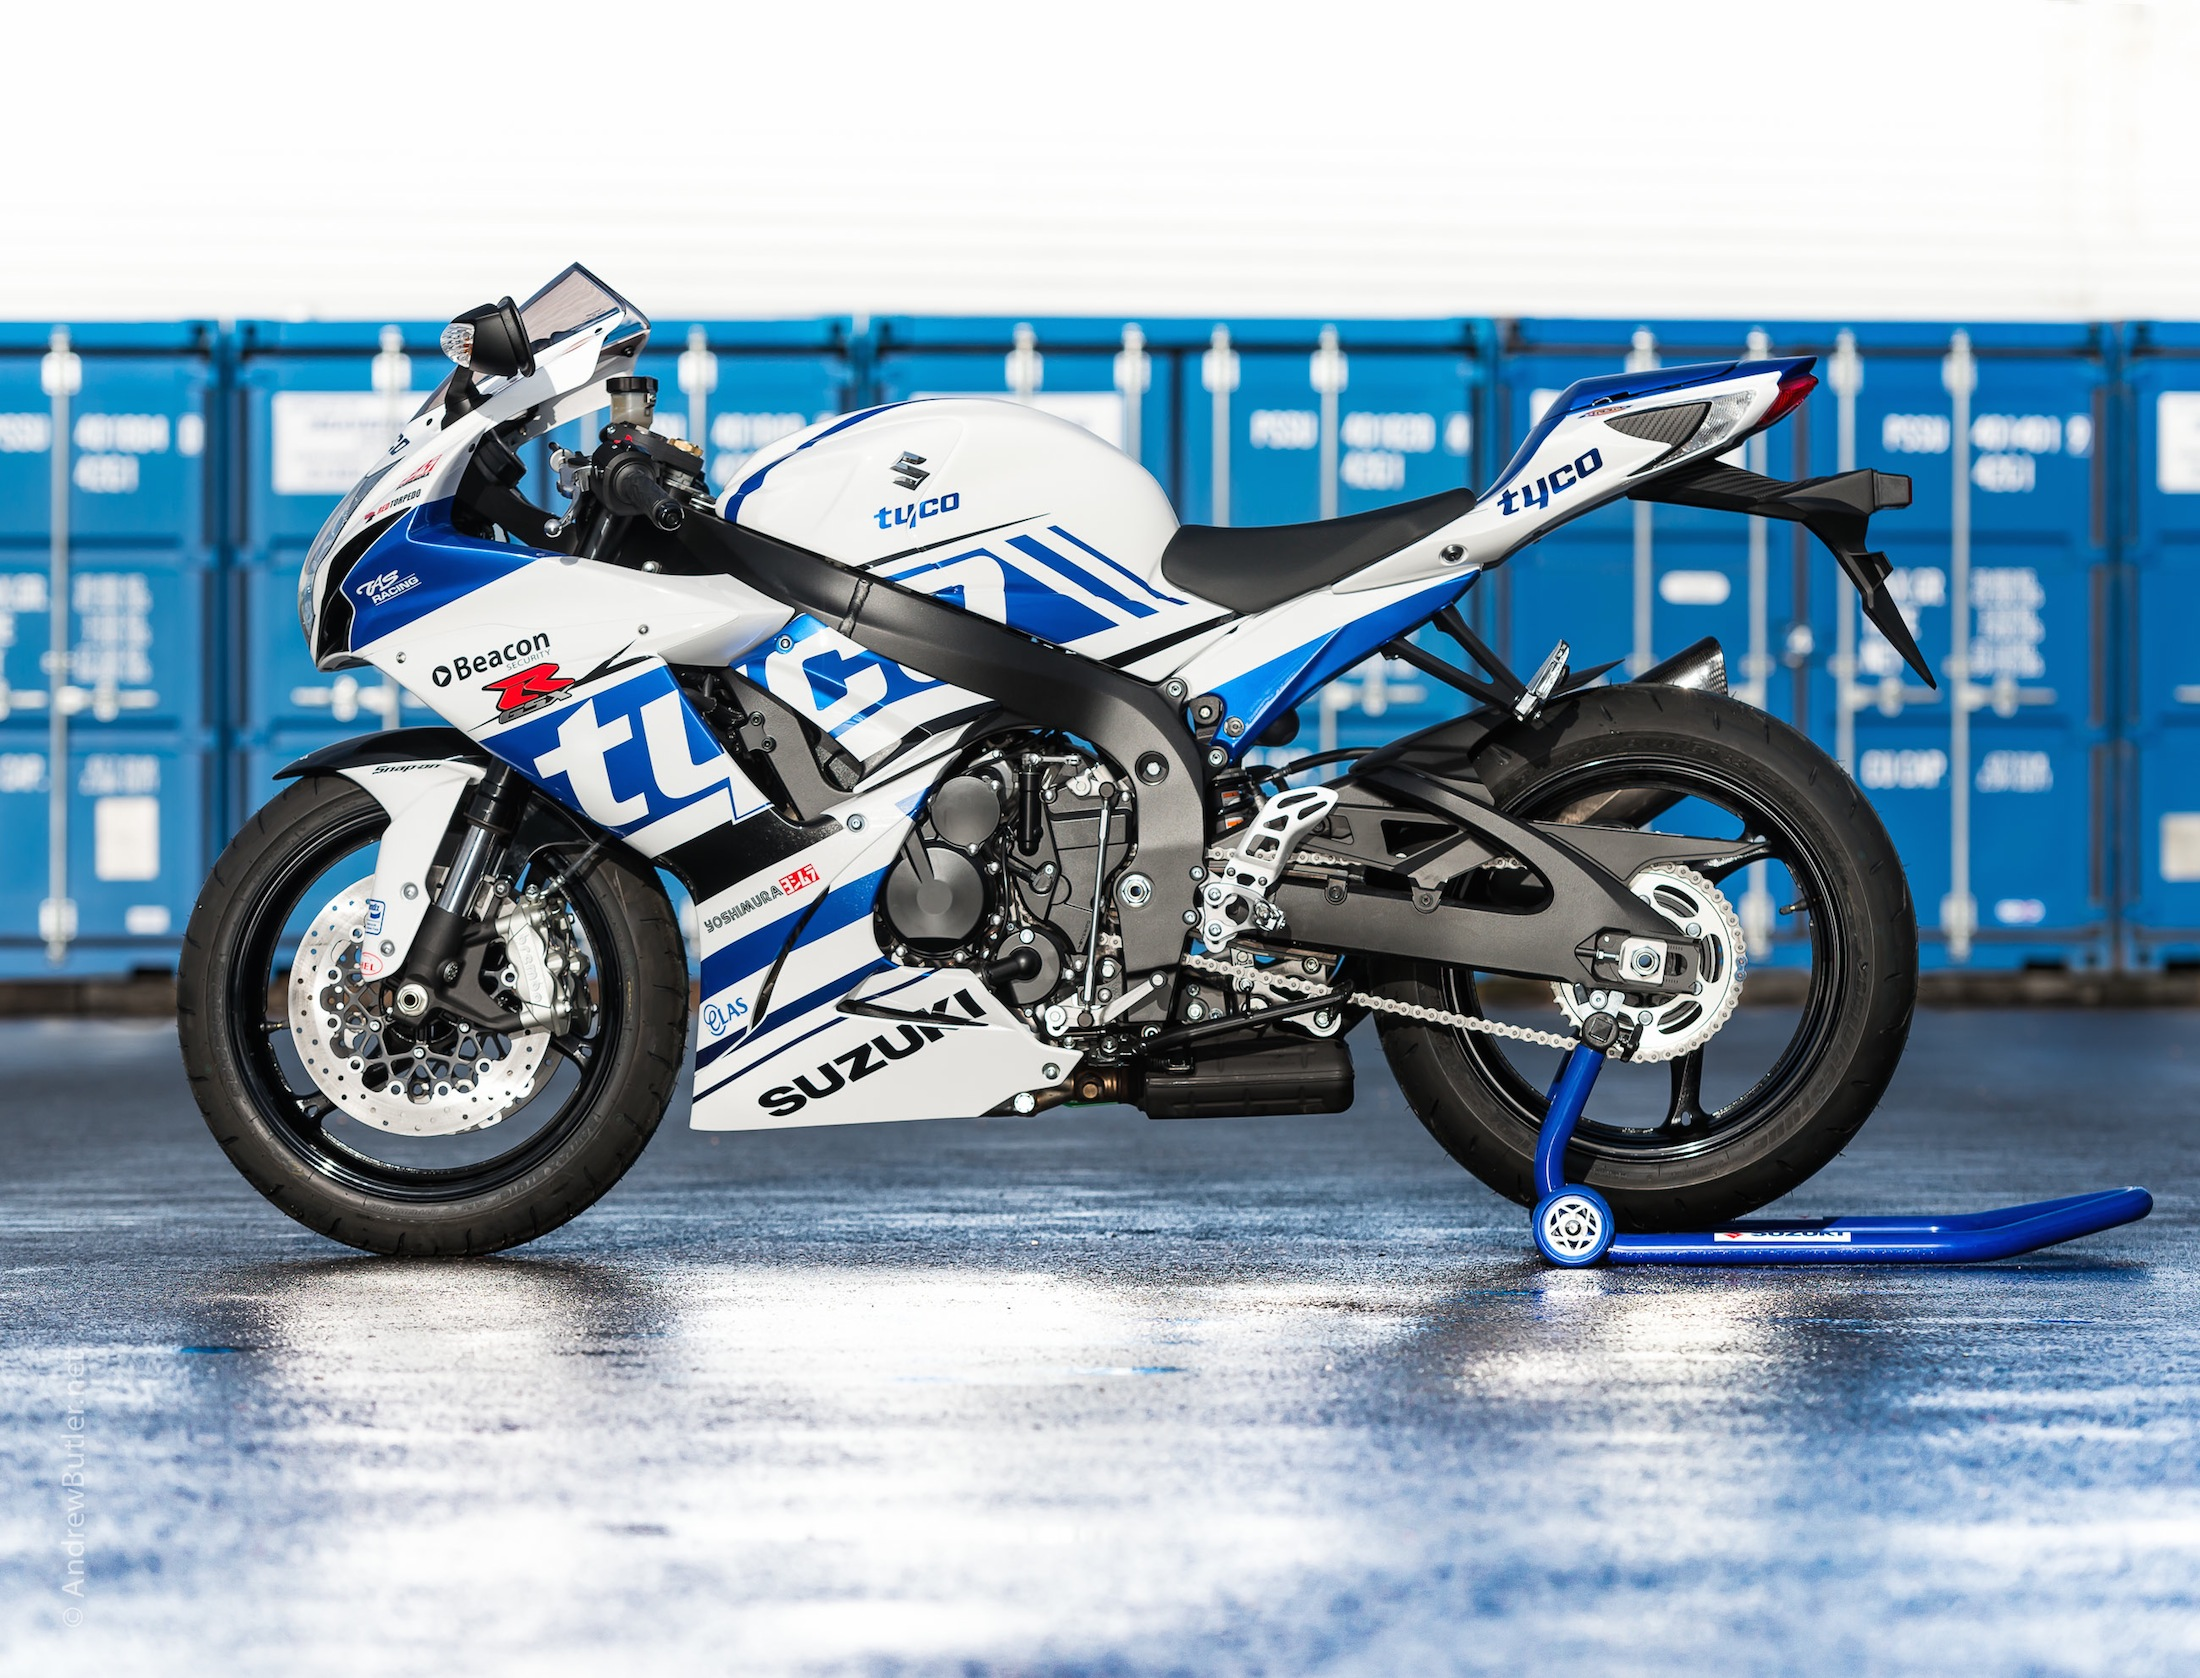 Tyco GSX 600R Suzuki by Andrew Butler by motorbike photographer Andrew Butler